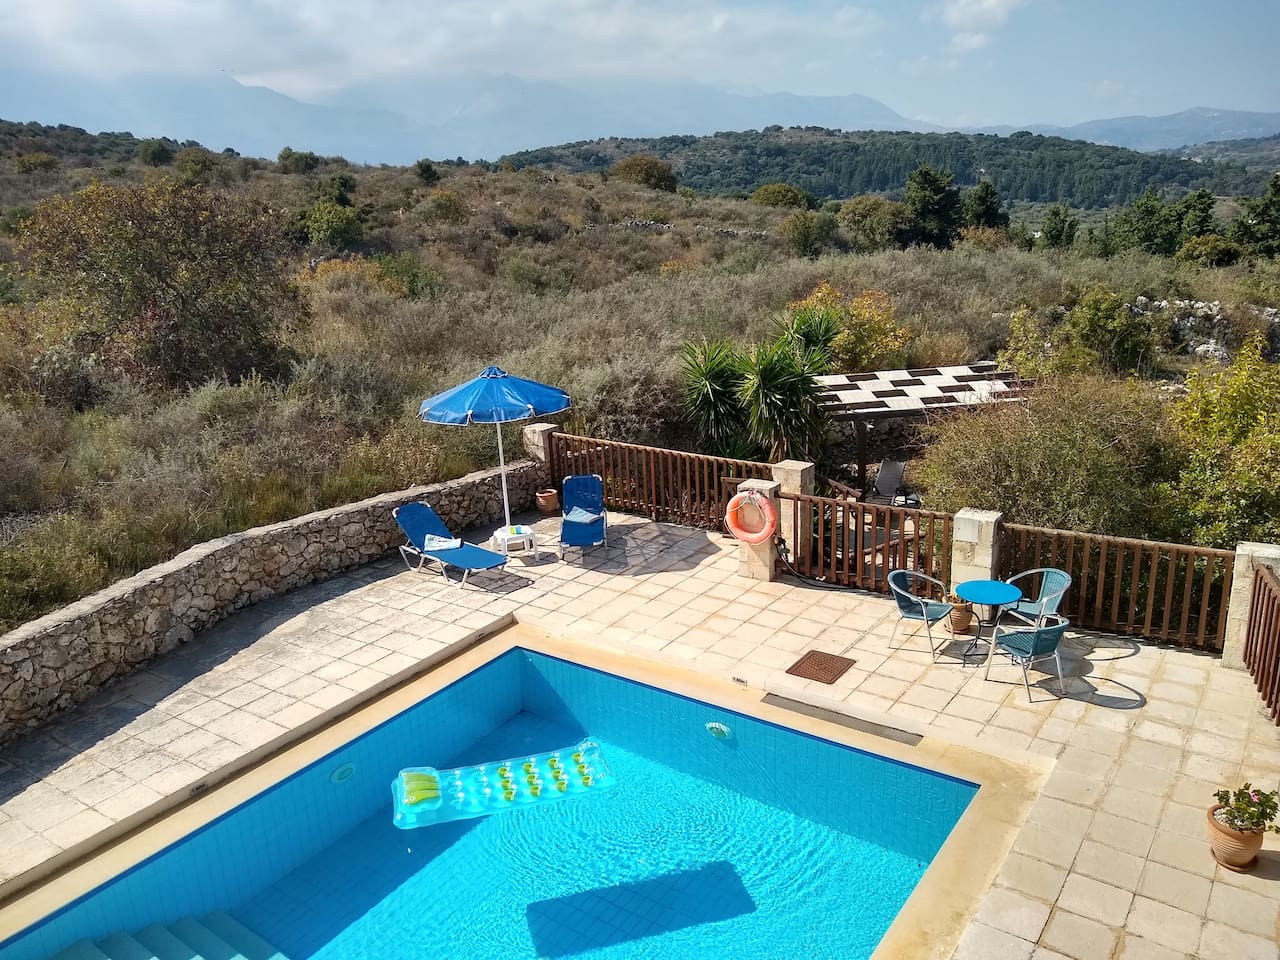 View from villa balcony across the pool to the White Mountains. The shady pergola can be seen in the garden.